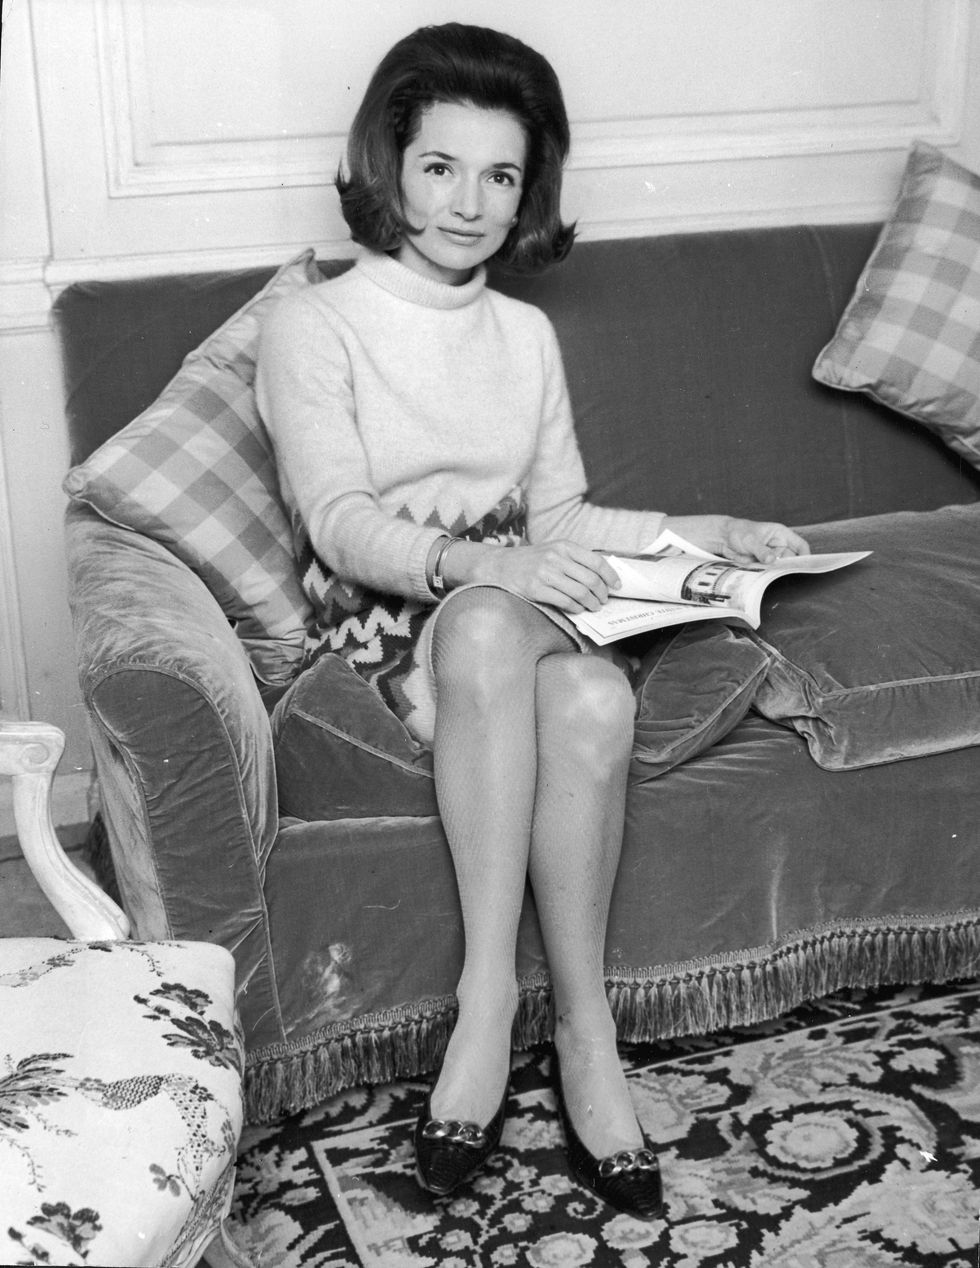 Lee Radziwill seated, 1960s.